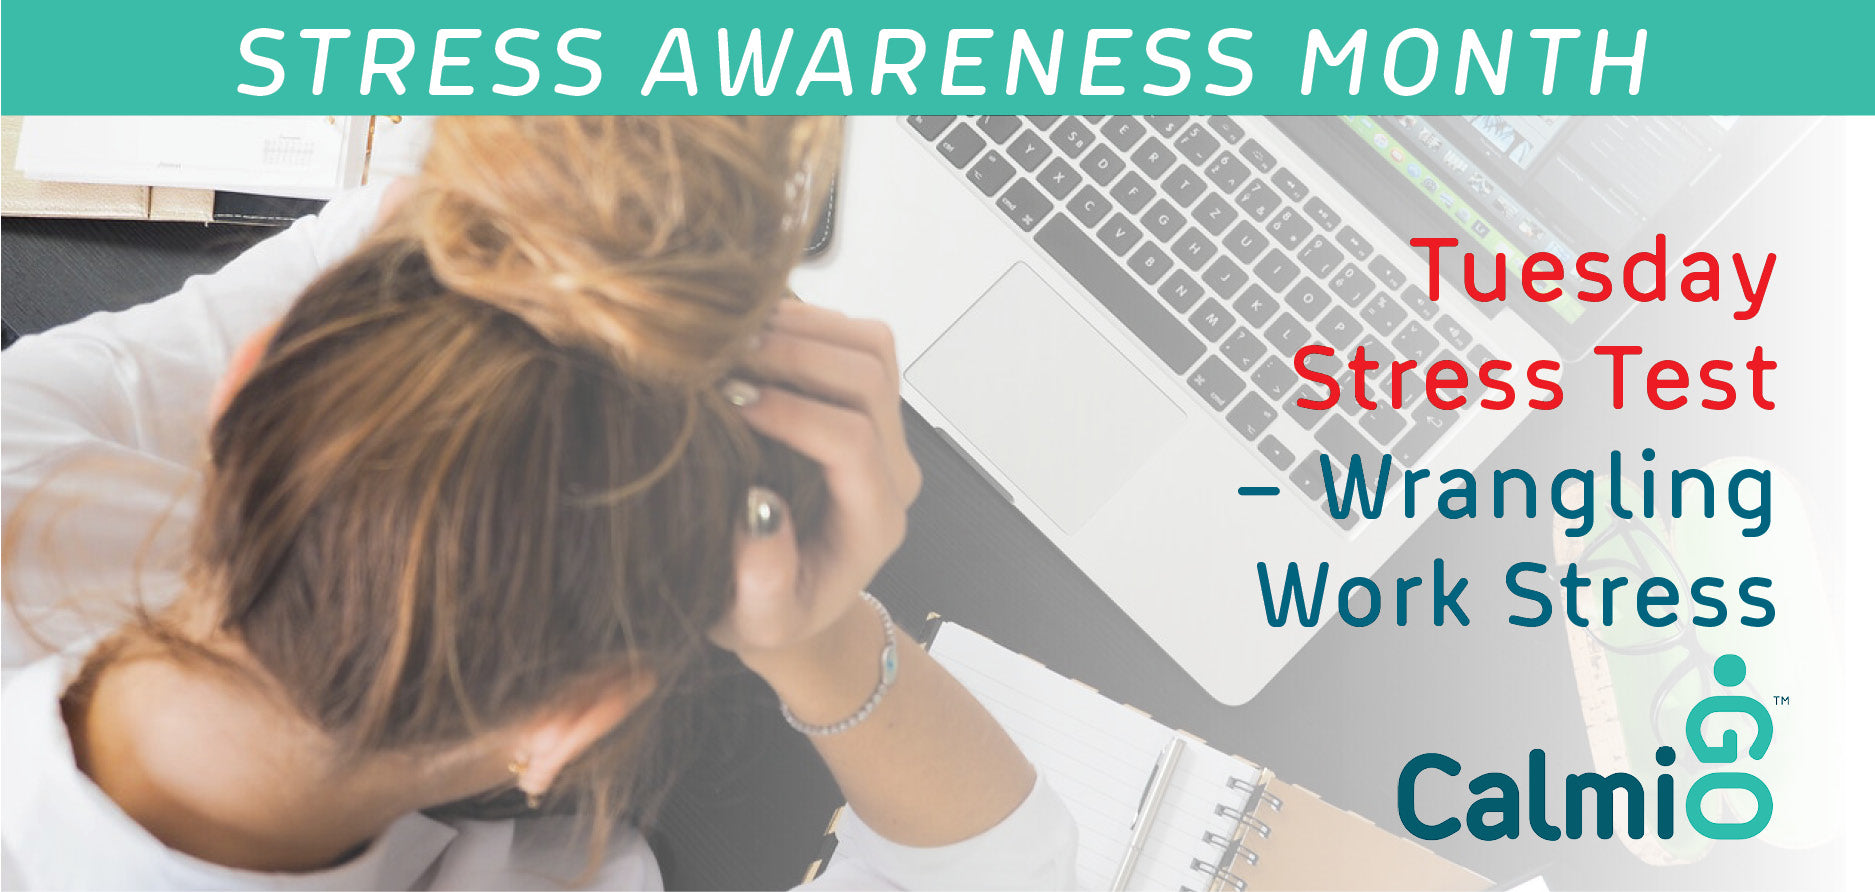 April 2 – Stress Awareness Month Tuesday Stress Test – Wrangling Work Stress